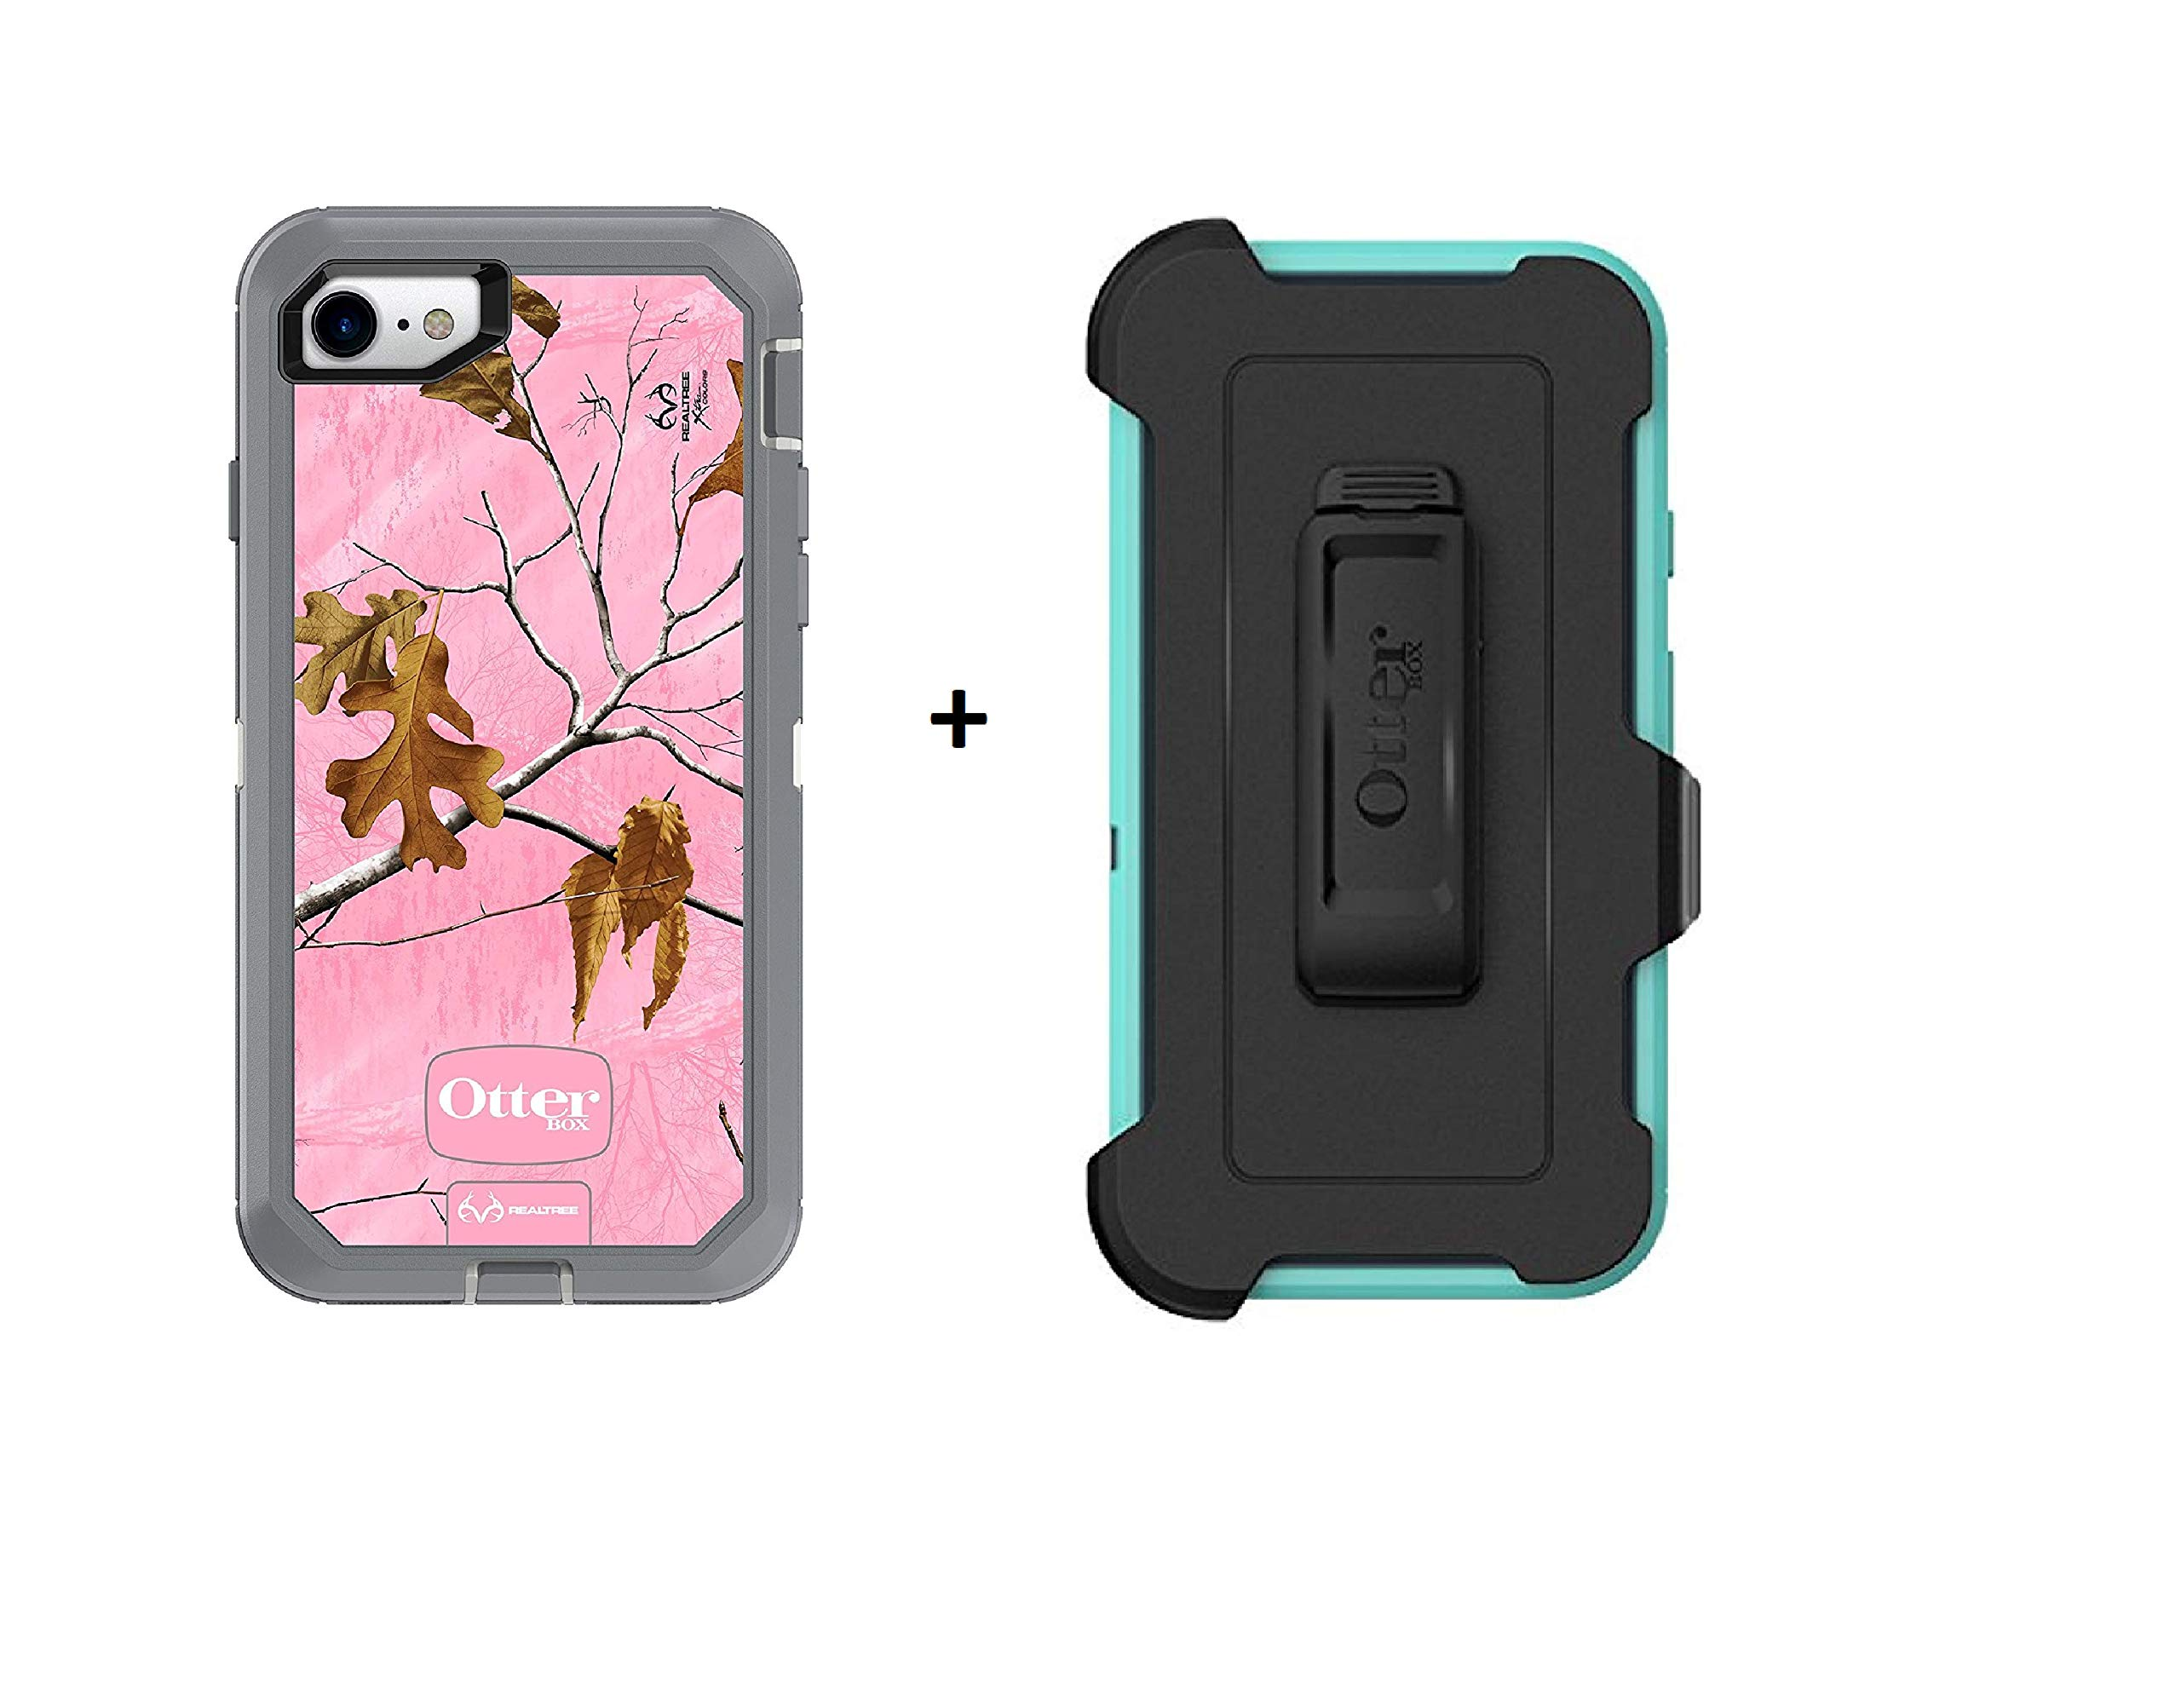 OtterBox Defender Series Case for iPhone 8 & iPhone 7 (NOT Plus) + Belt Clip Holster - Realtree Xtra Pink (White/Gunmetal Grey/Xtra Pink Design) ... by OtterBox